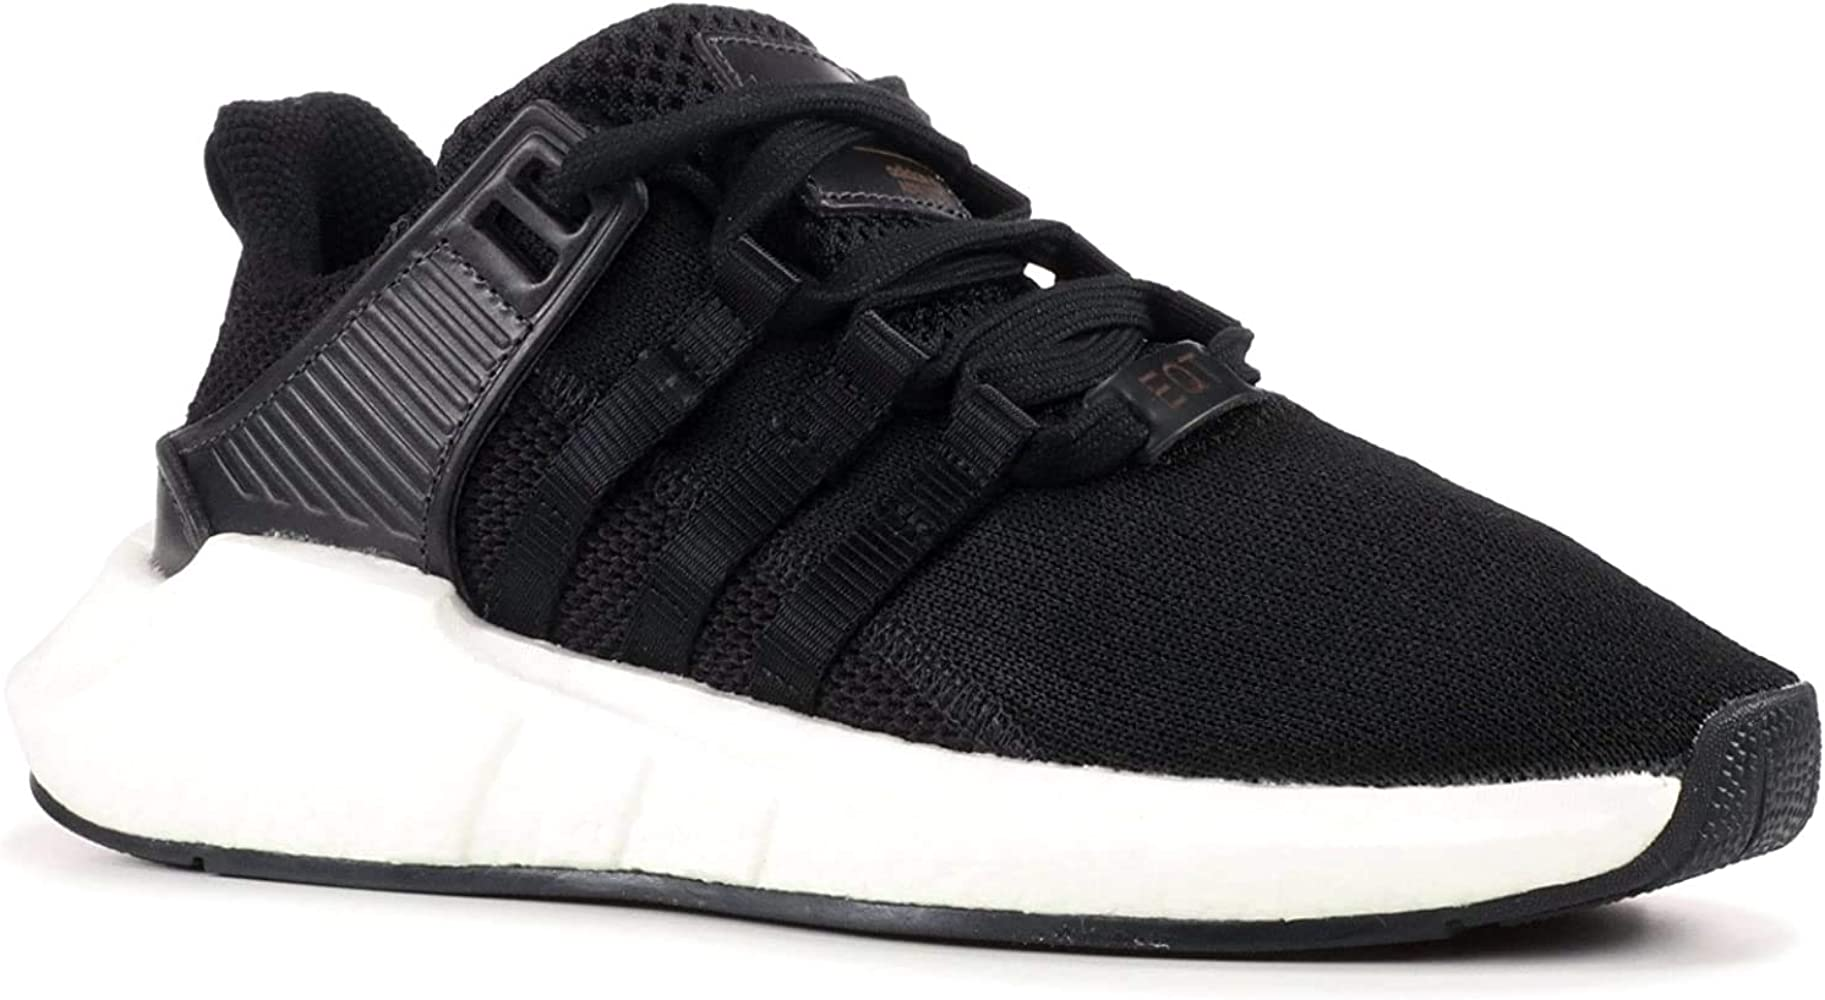 adidas EQT Support 93/17 - Size 10.5